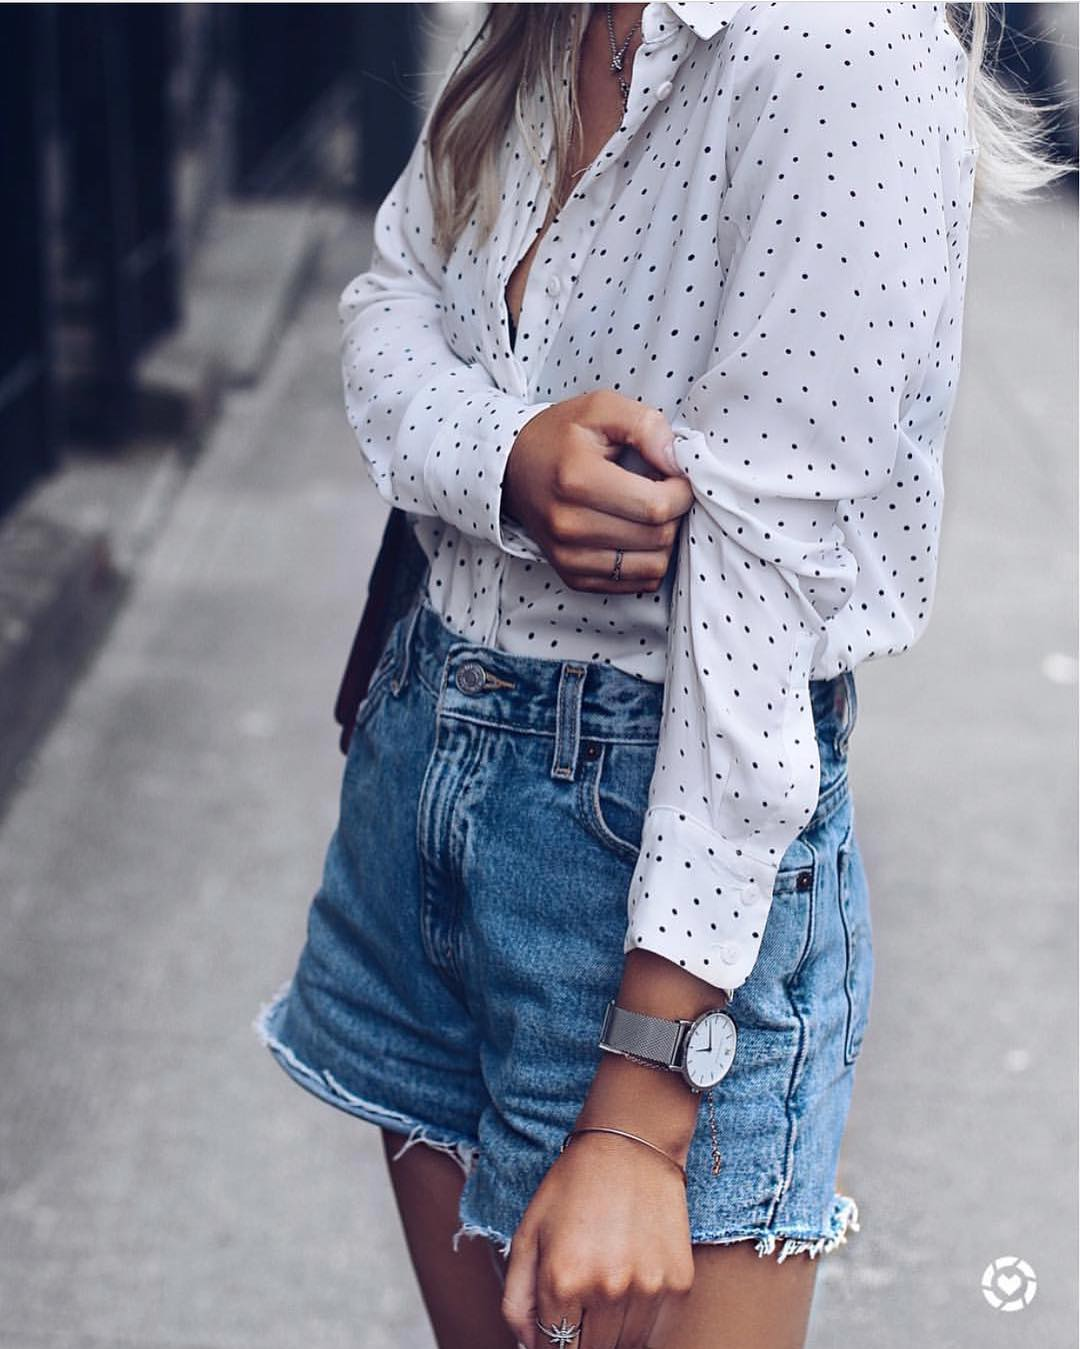 How To Wear White Shirt In Black Dots This Summer 2020